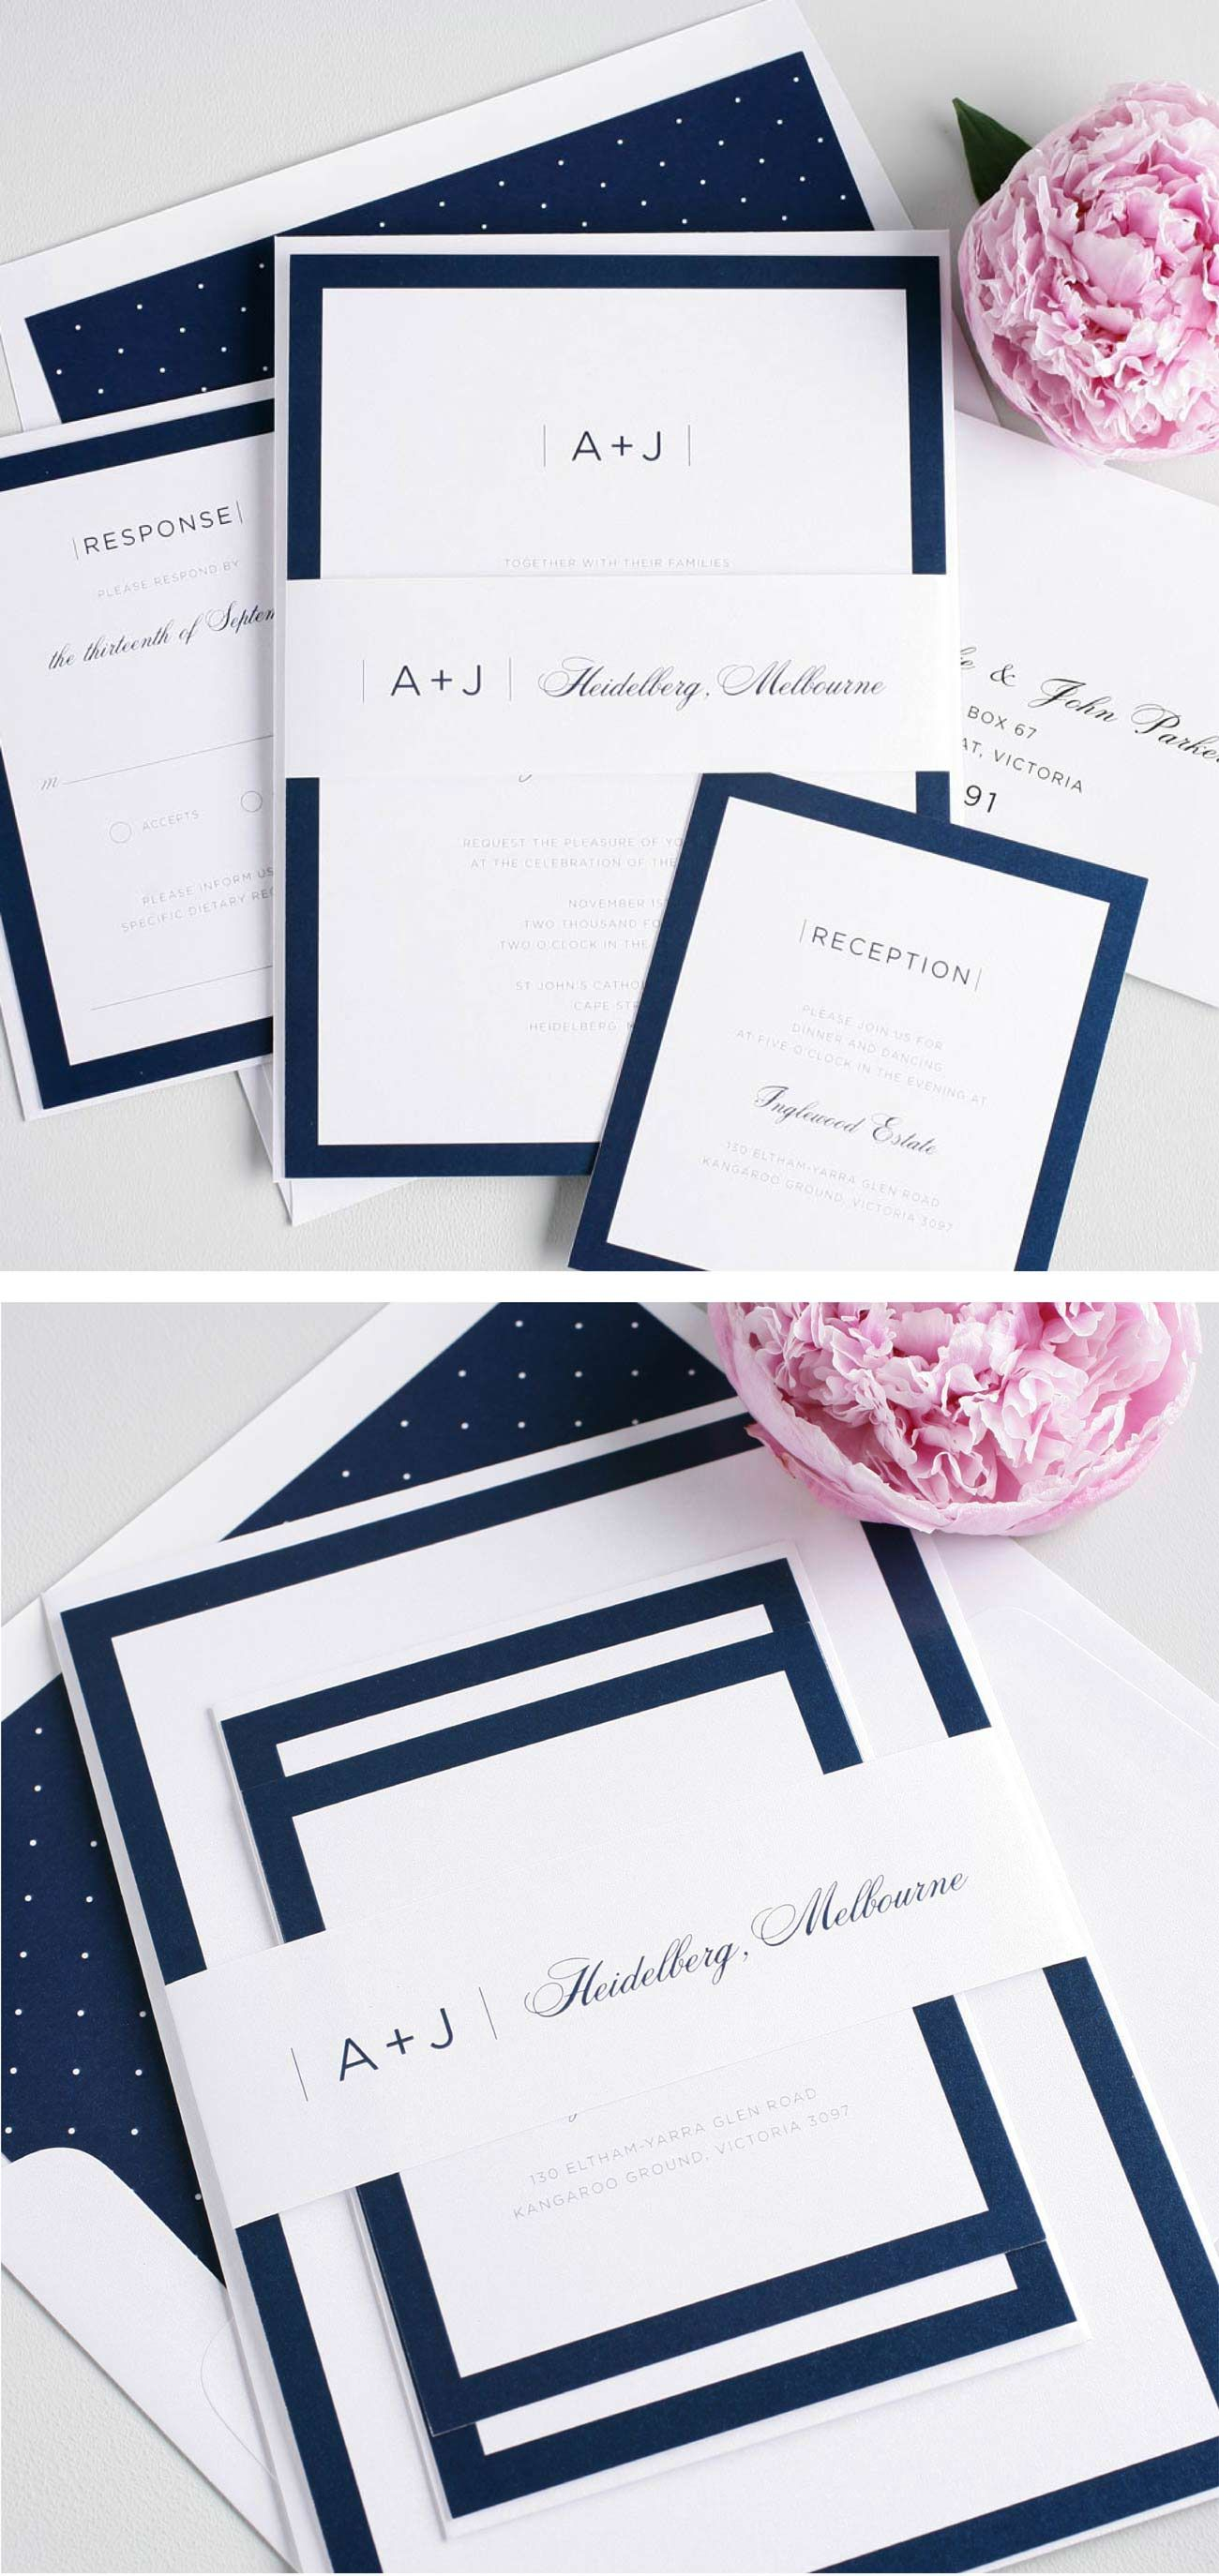 Sophisticated Modern Wedding Invitations | Bröllops inspiration ...